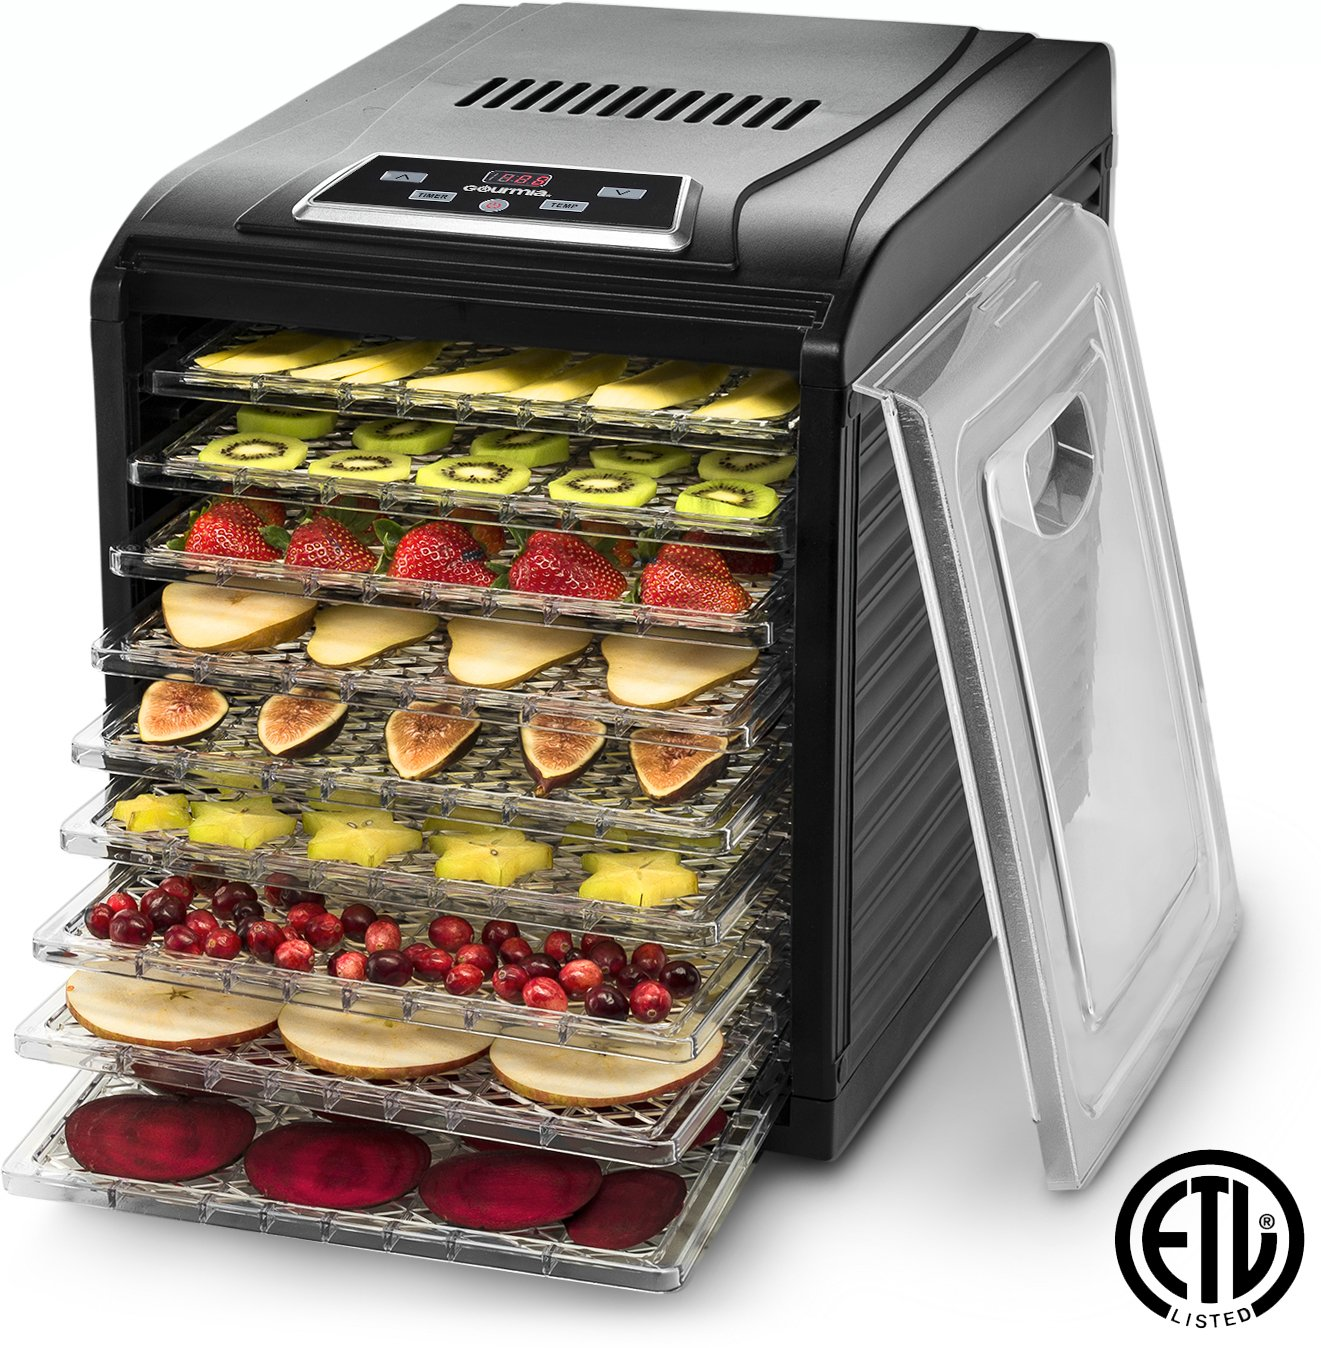 Gourmia GFD1950 Digital Food Dehydrator - 9 Drying Trays Plus Fruit Leather Tray - Digital Temperature Control - Transparent Window - 600W - Black - Free Recipe Book